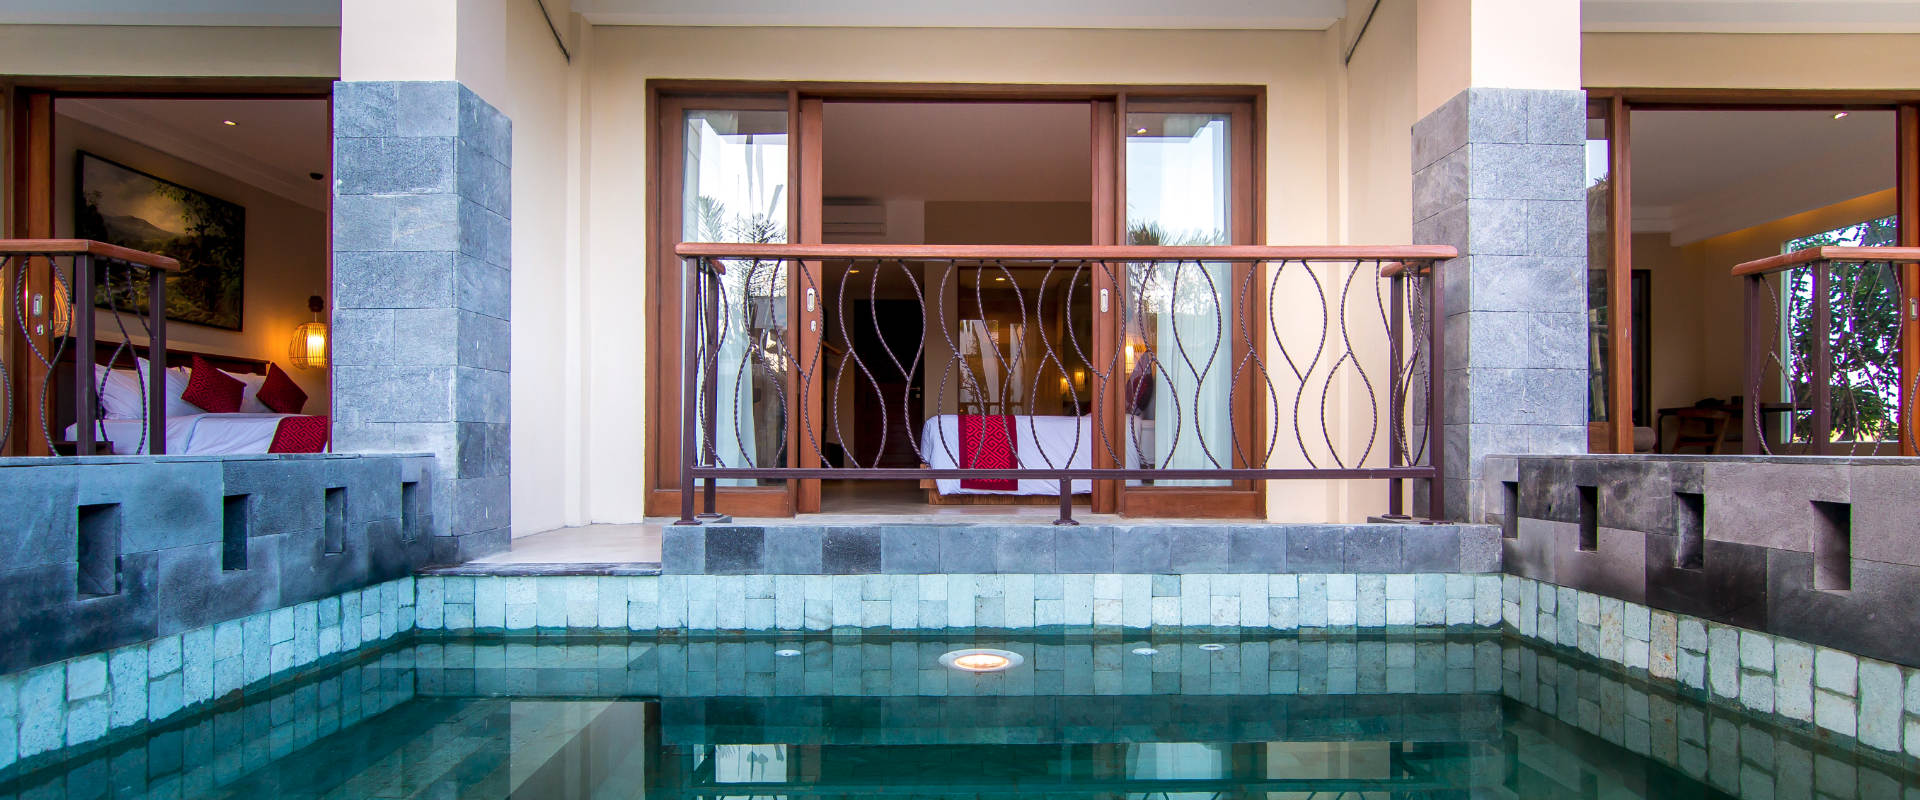 Deluxe Room with Plunge Pool